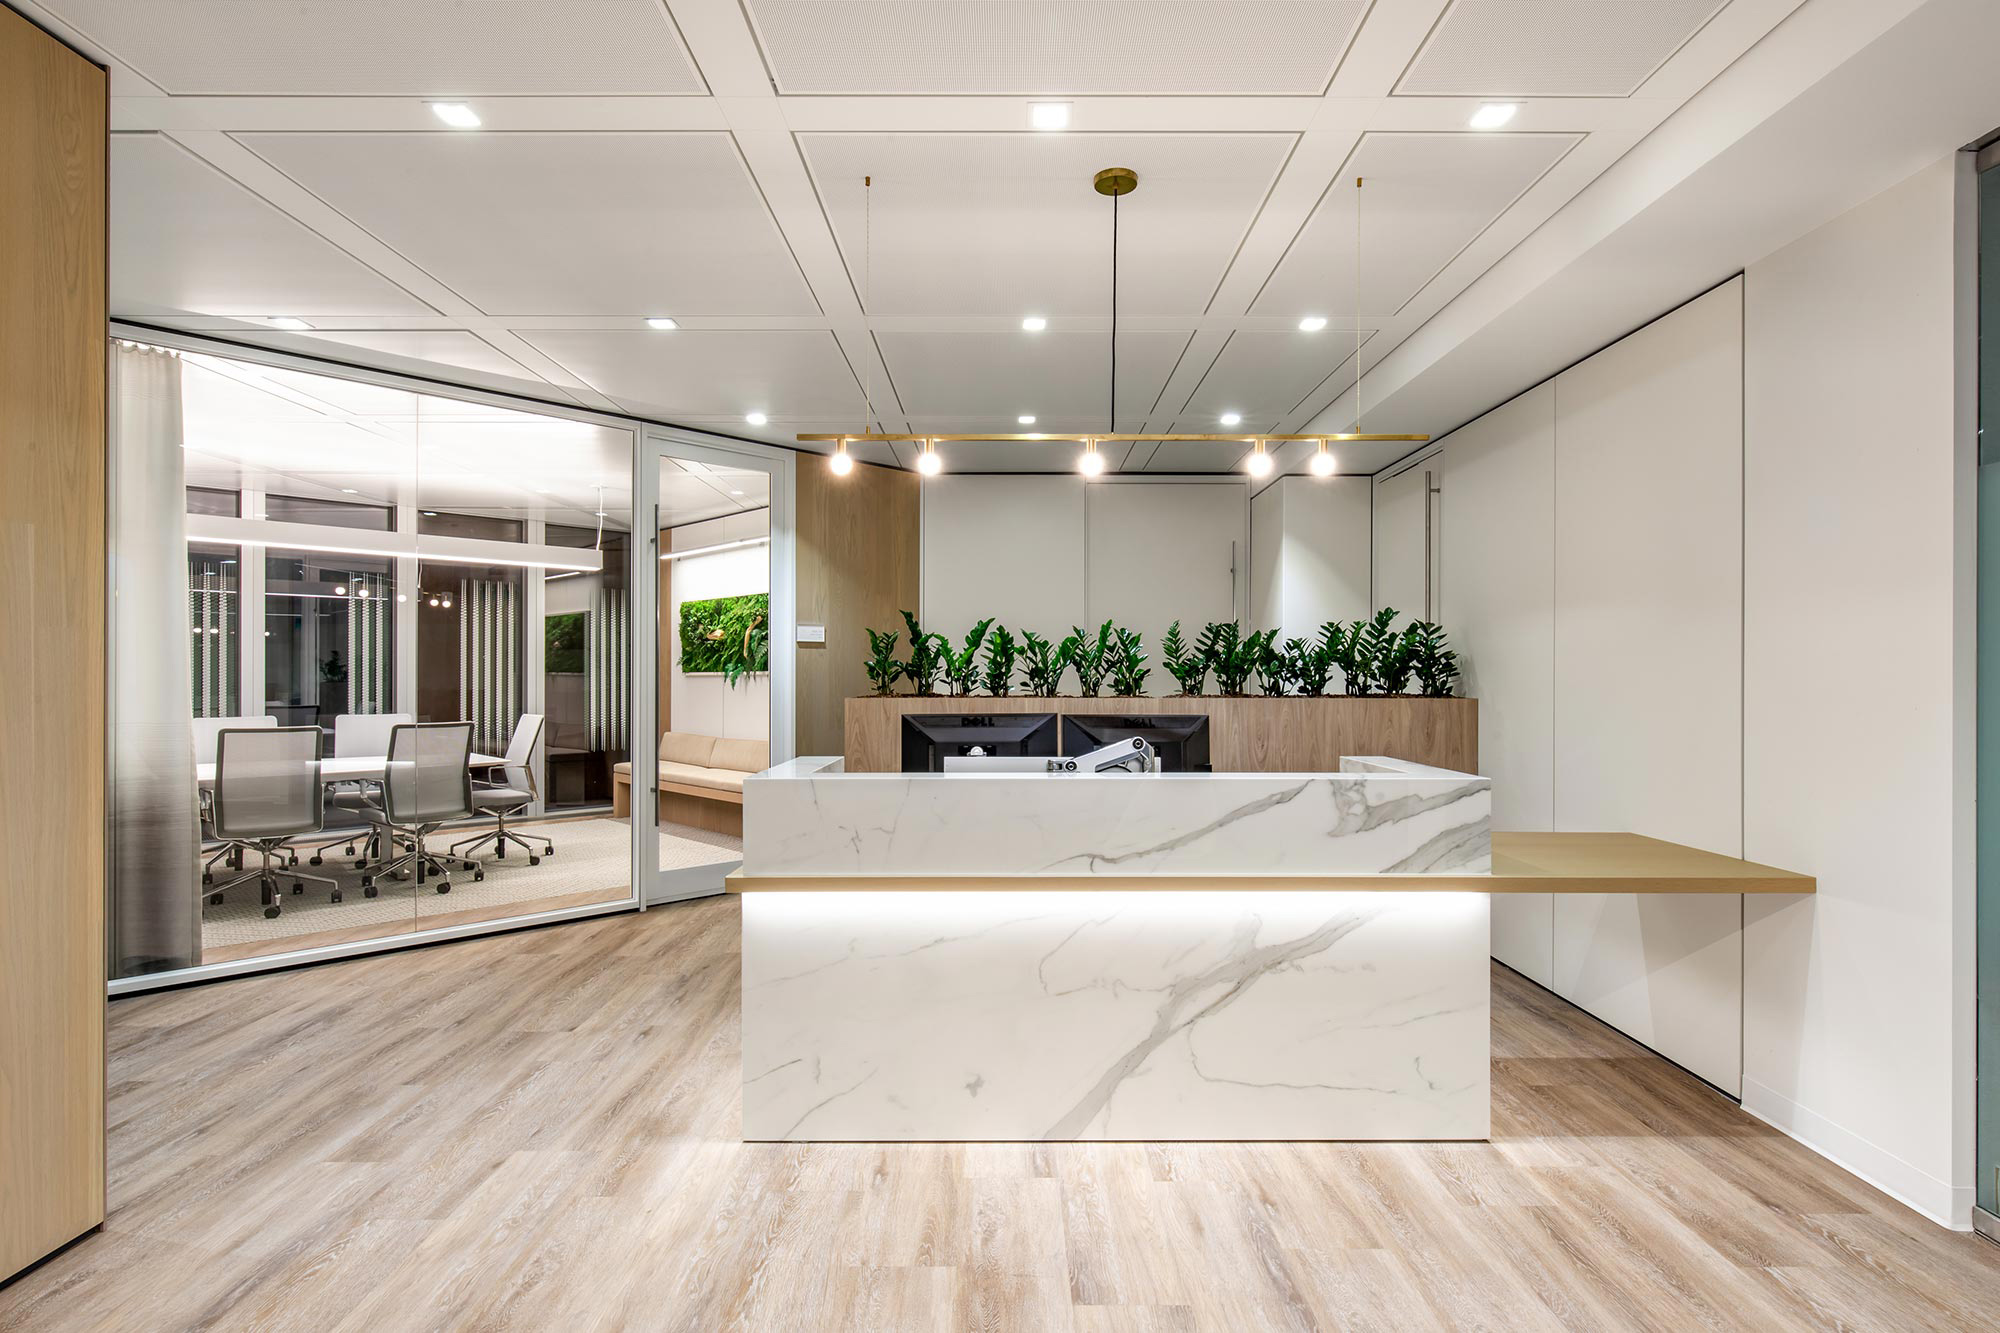 insurance-interior-design-common-area-boardroom.jpg